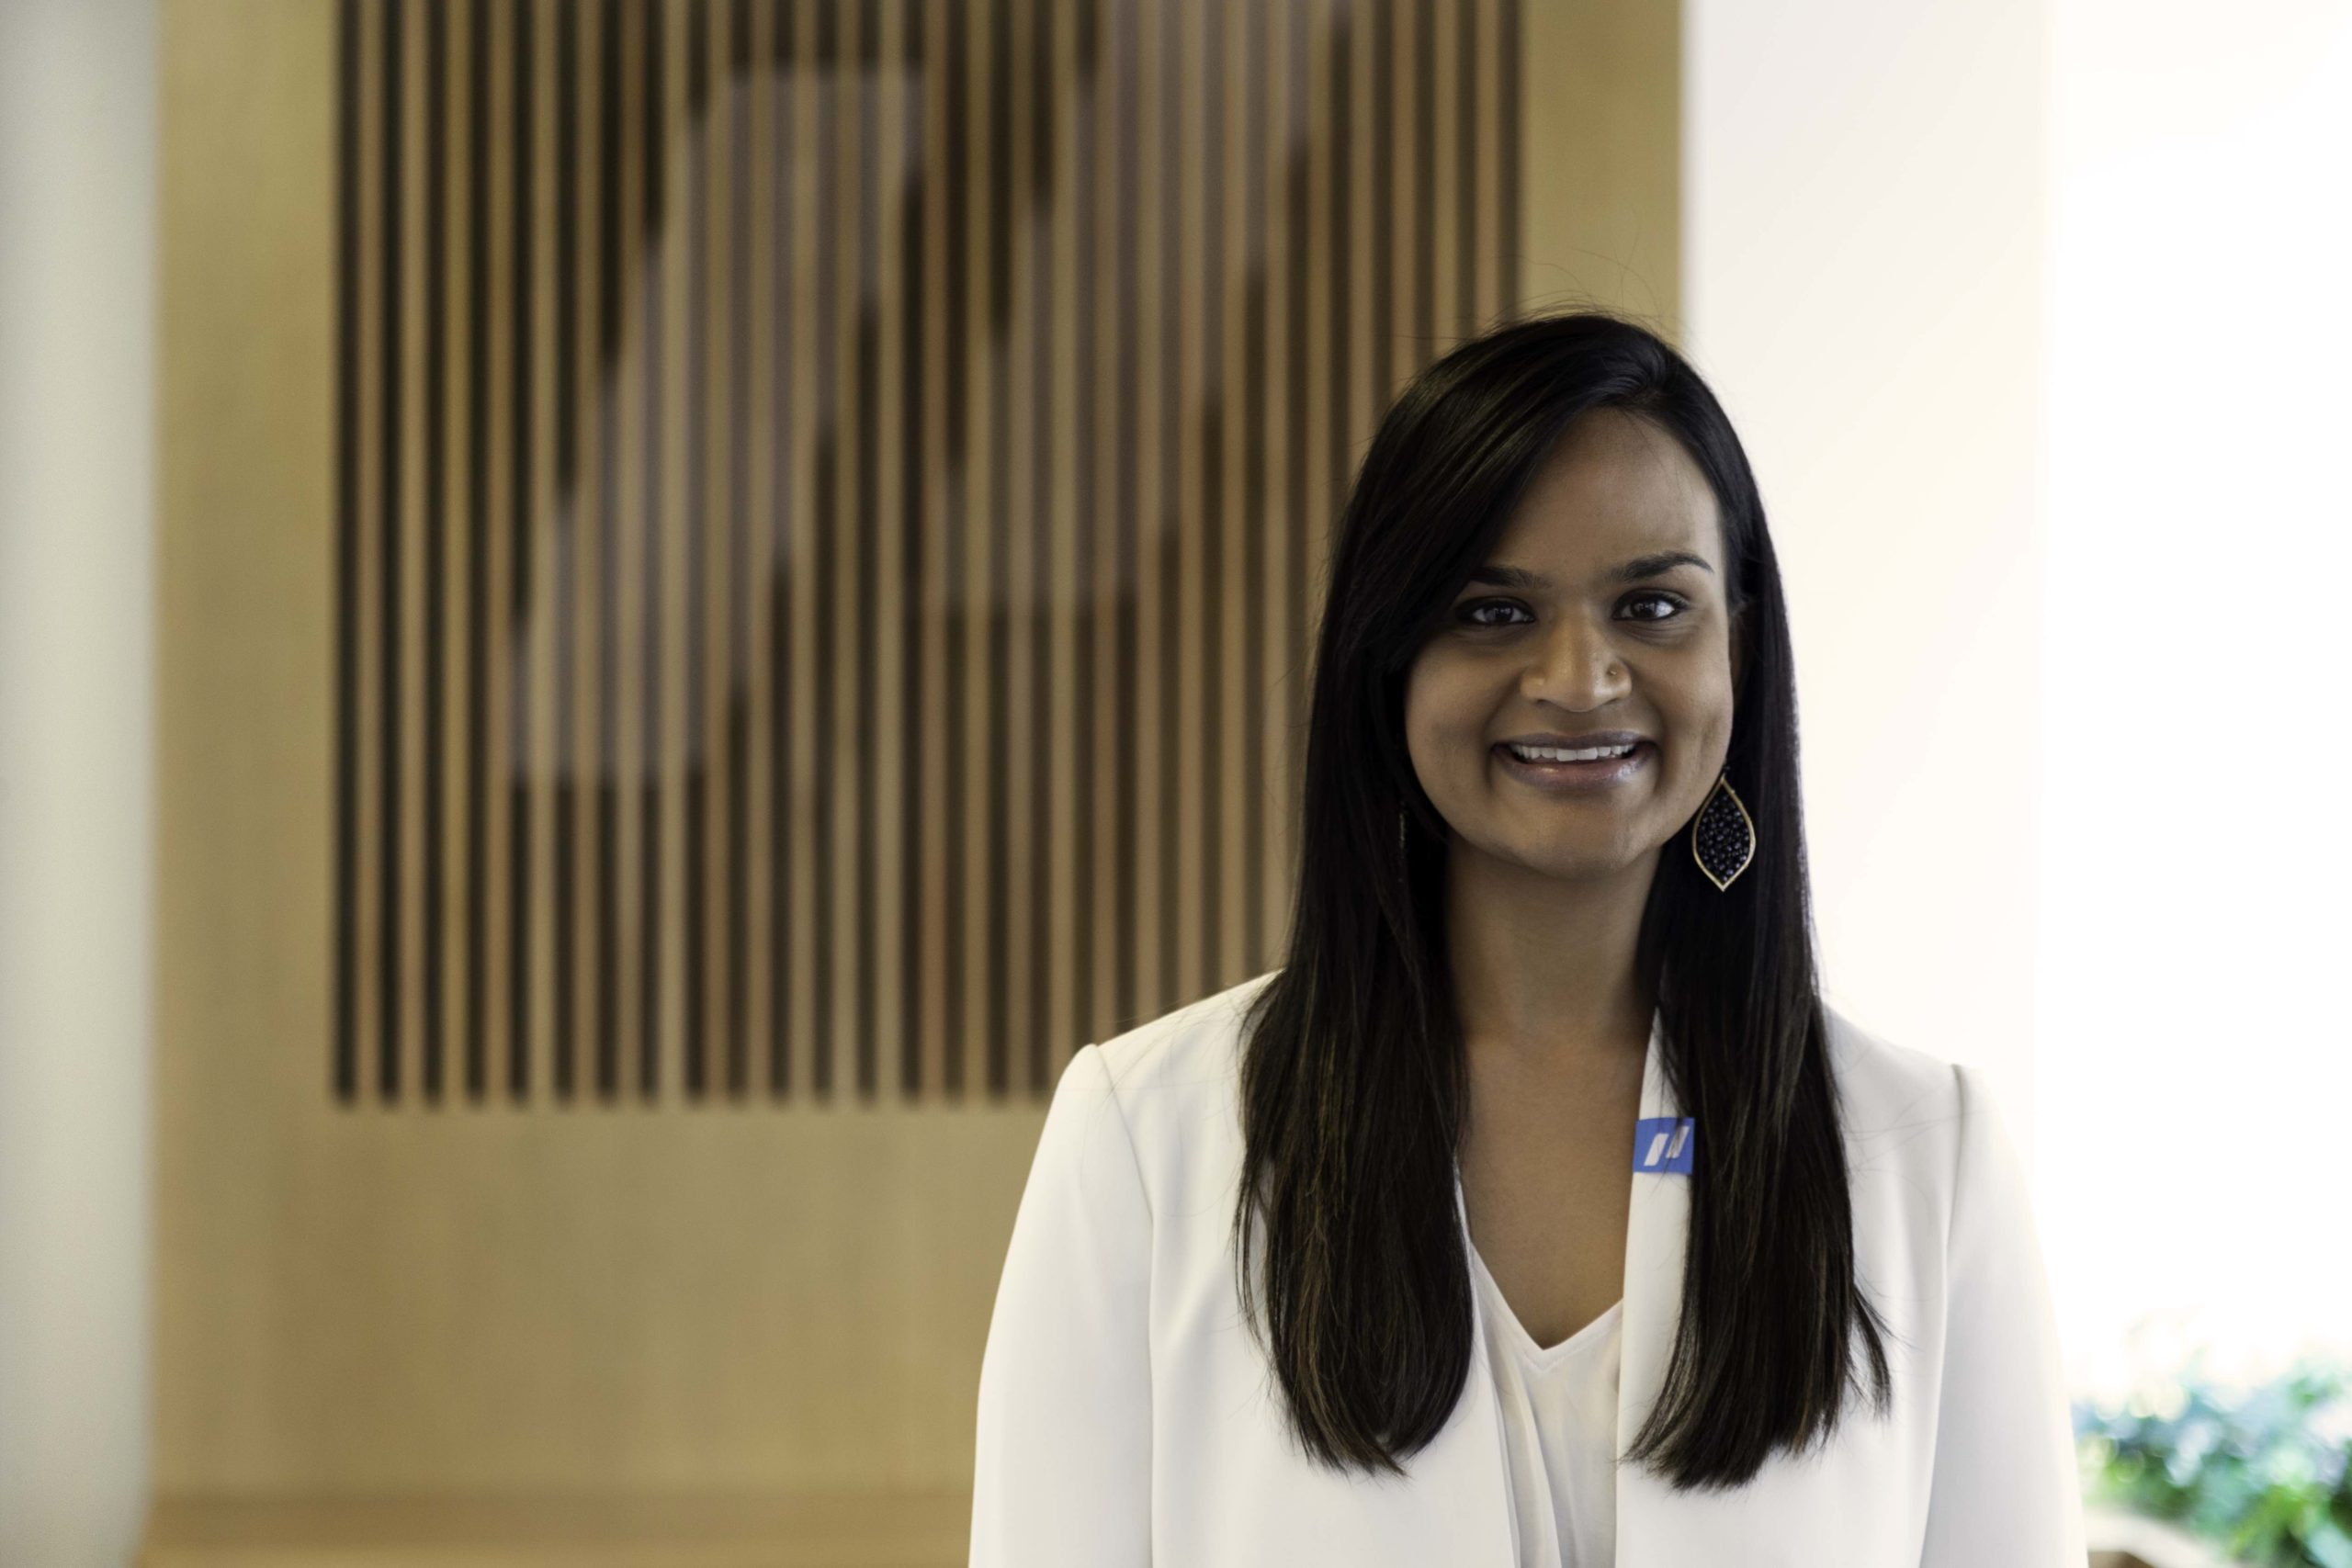 Meet Dr. Janushe Patel, Forward's Newest Physician in San Francisco